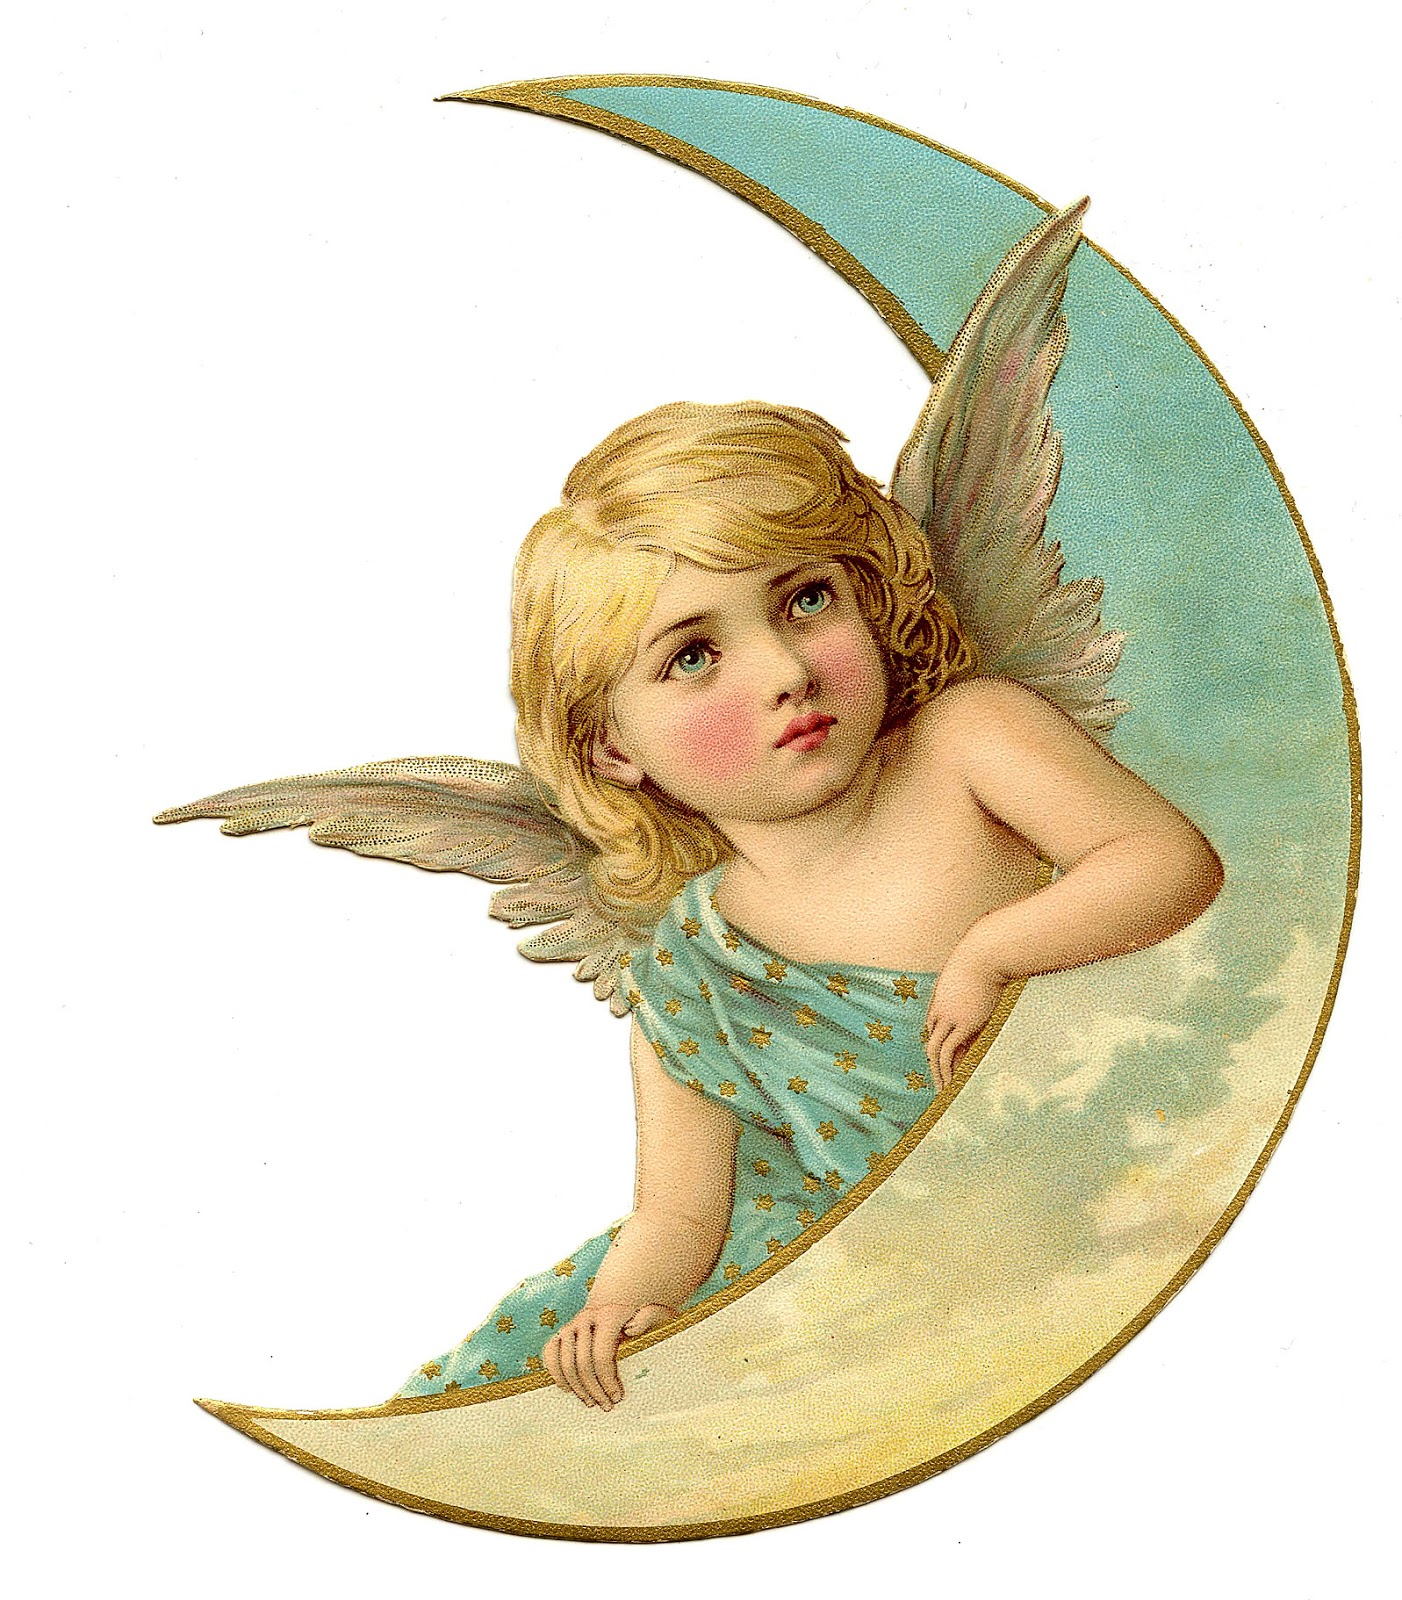 Vintage Christmas Image - Amazing Angel on Moon - The Graphics Fairy